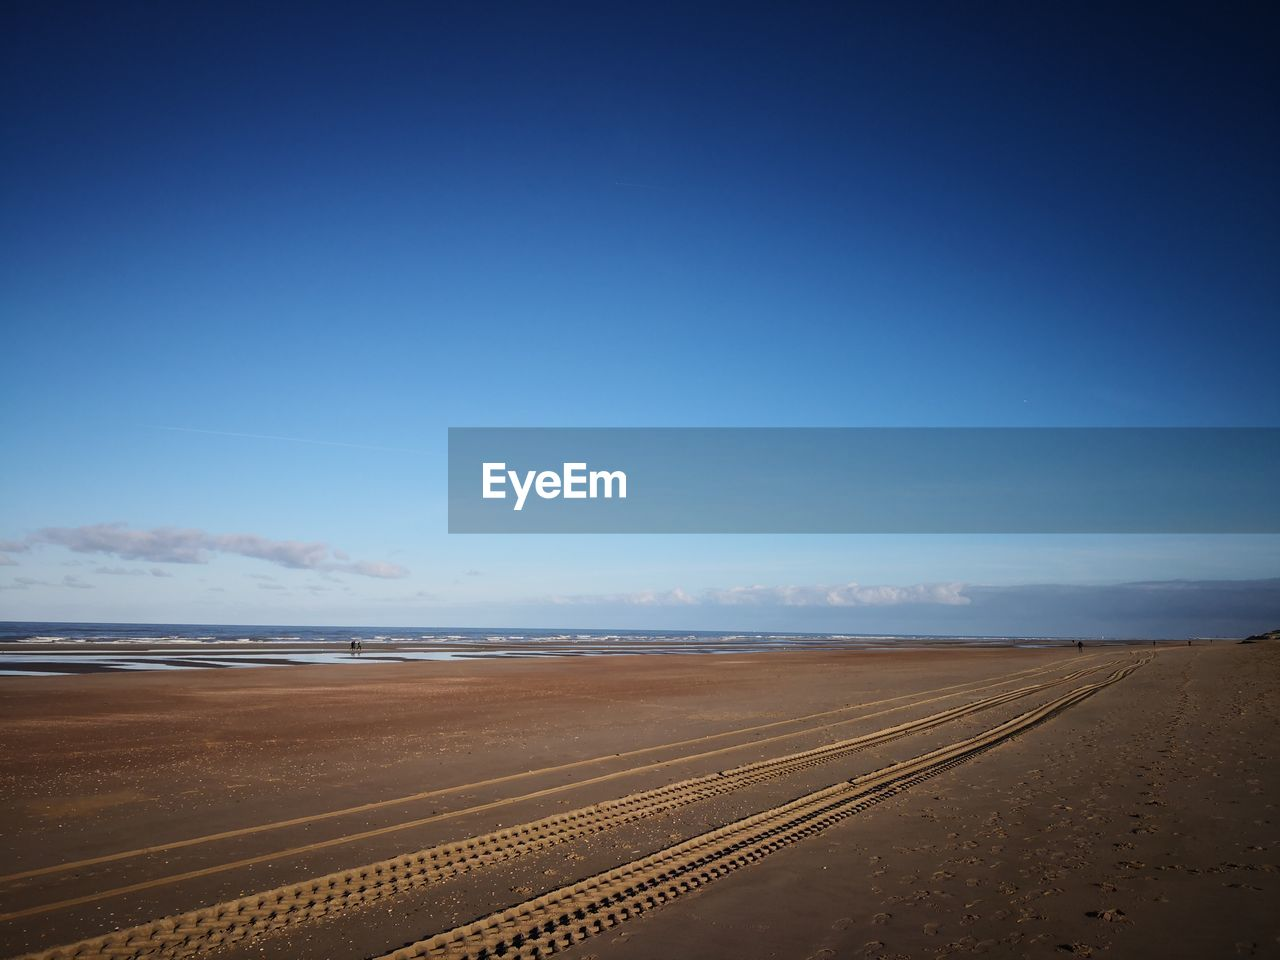 sky, scenics - nature, blue, land, copy space, beauty in nature, nature, tranquility, tranquil scene, day, no people, landscape, environment, road, sand, desert, non-urban scene, transportation, horizon, outdoors, arid climate